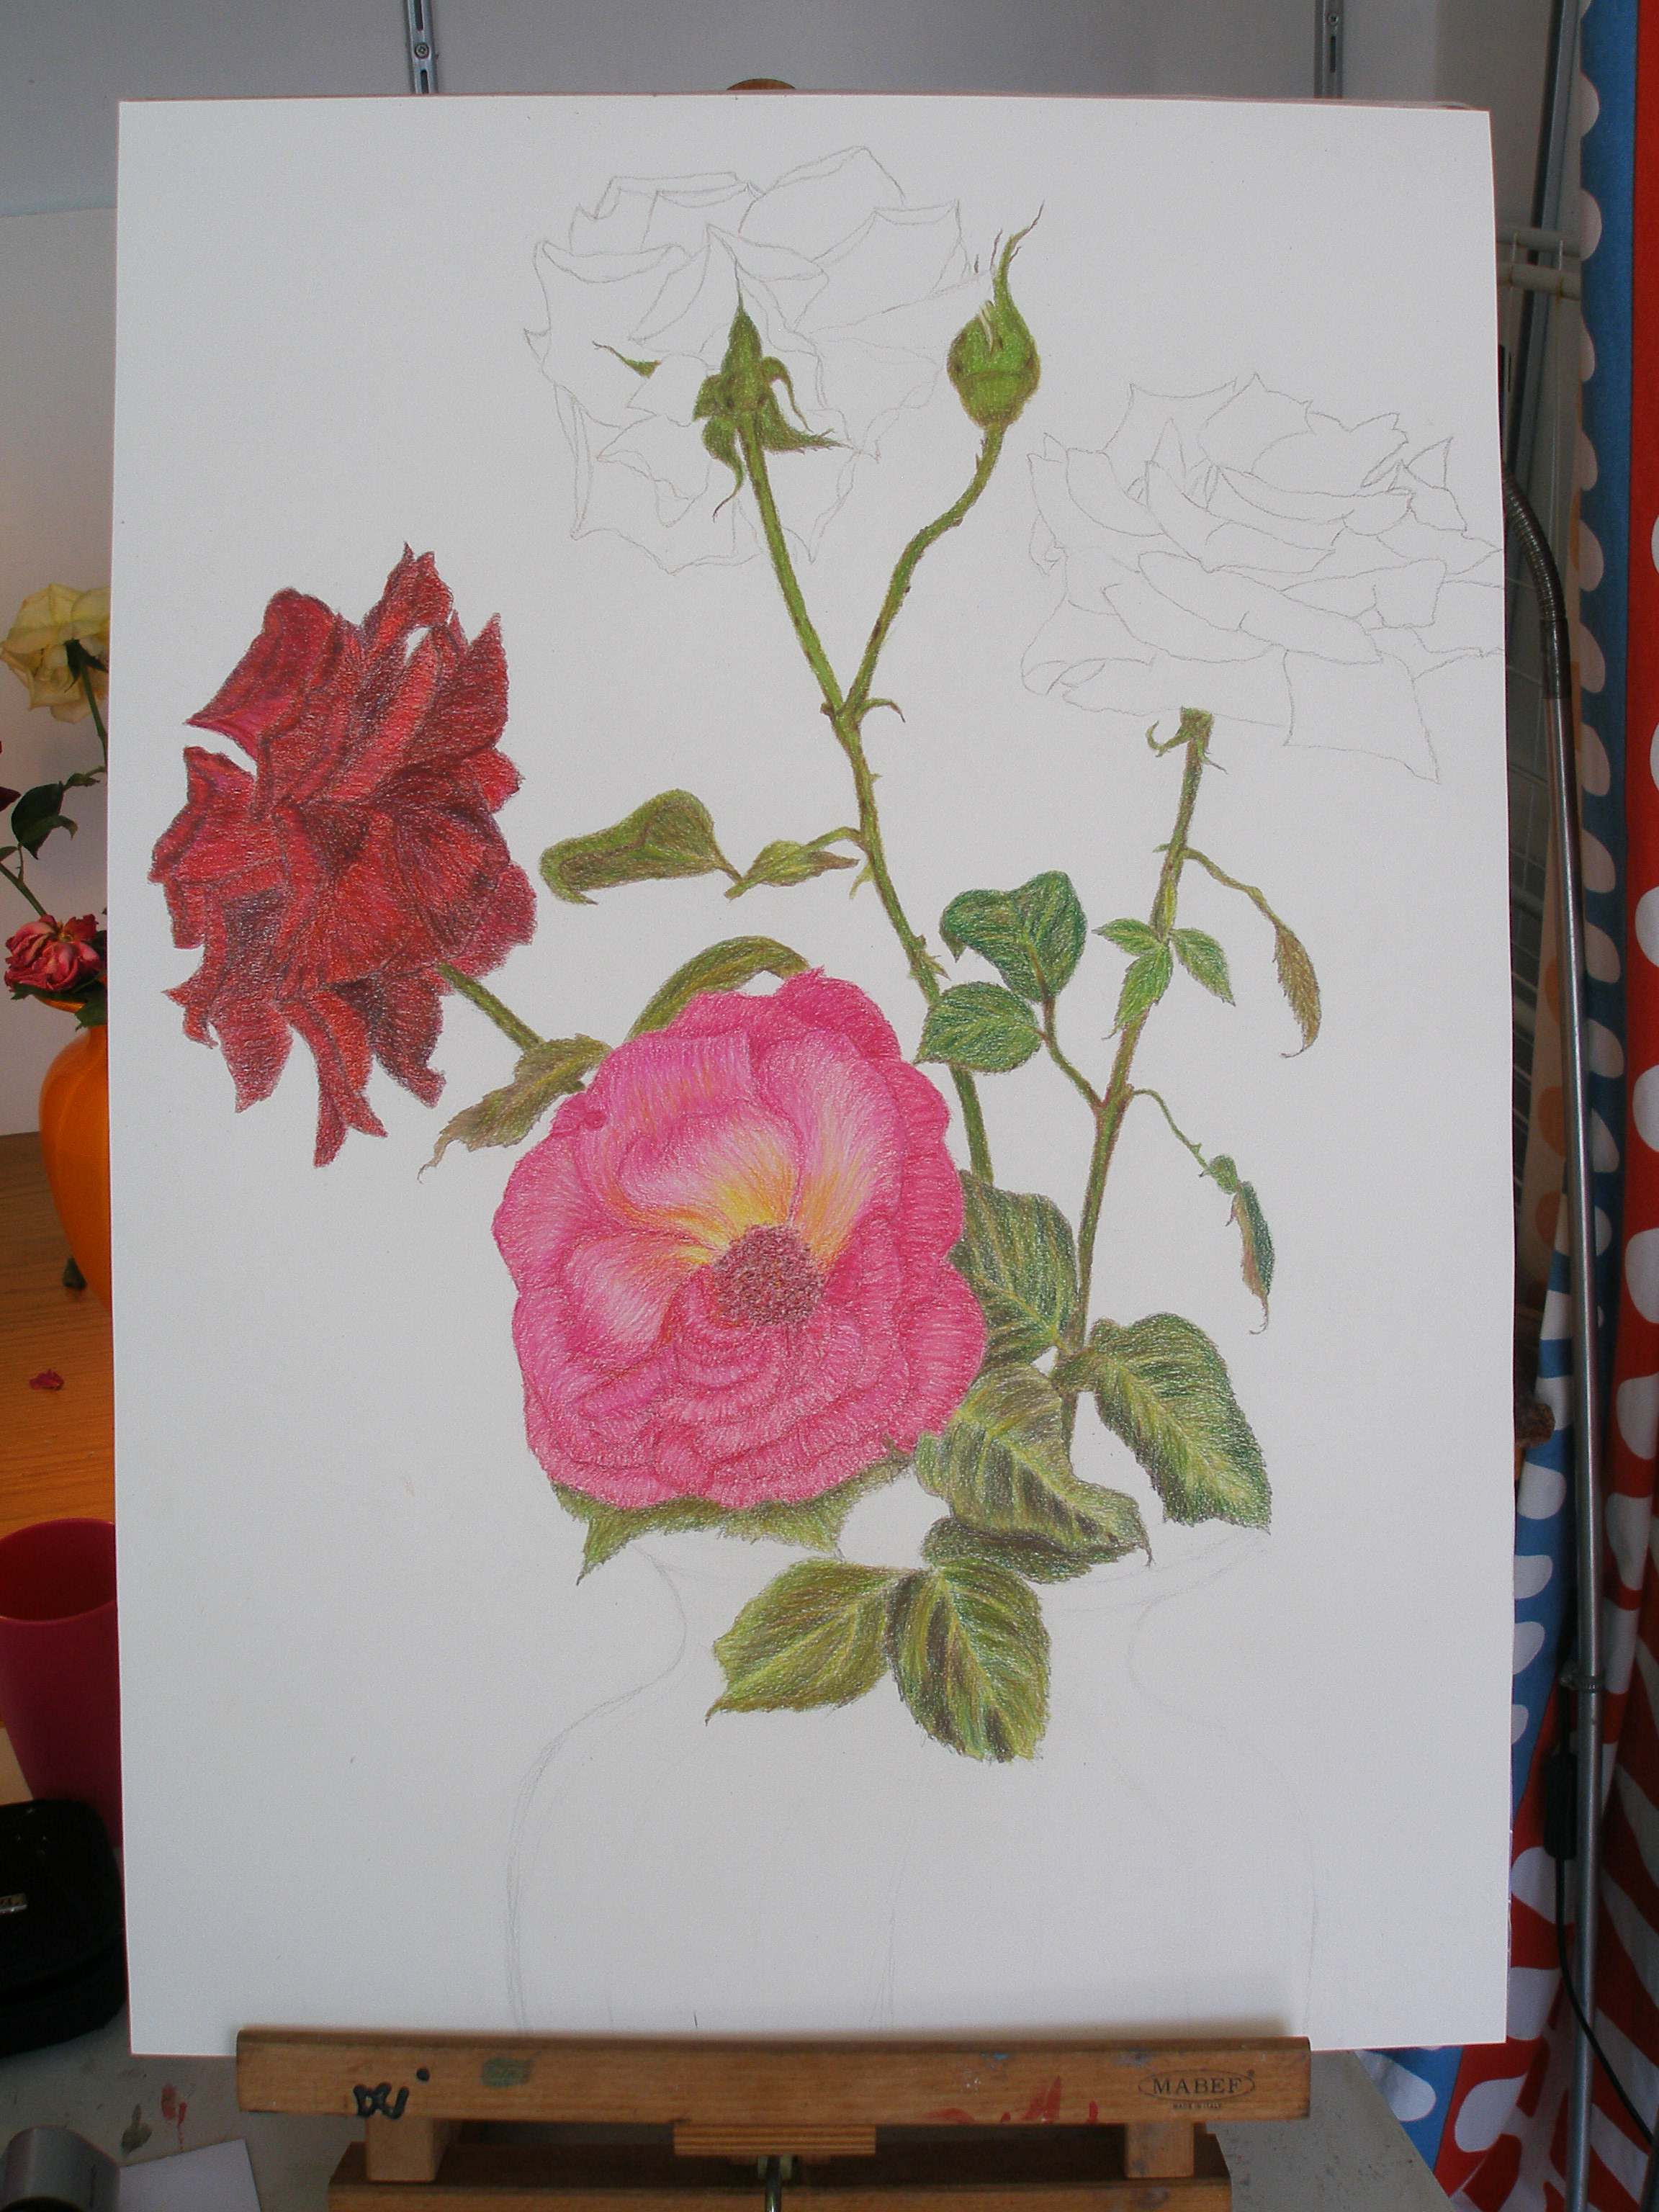 Drawn rose bush color shading Mareoca yellow of different used